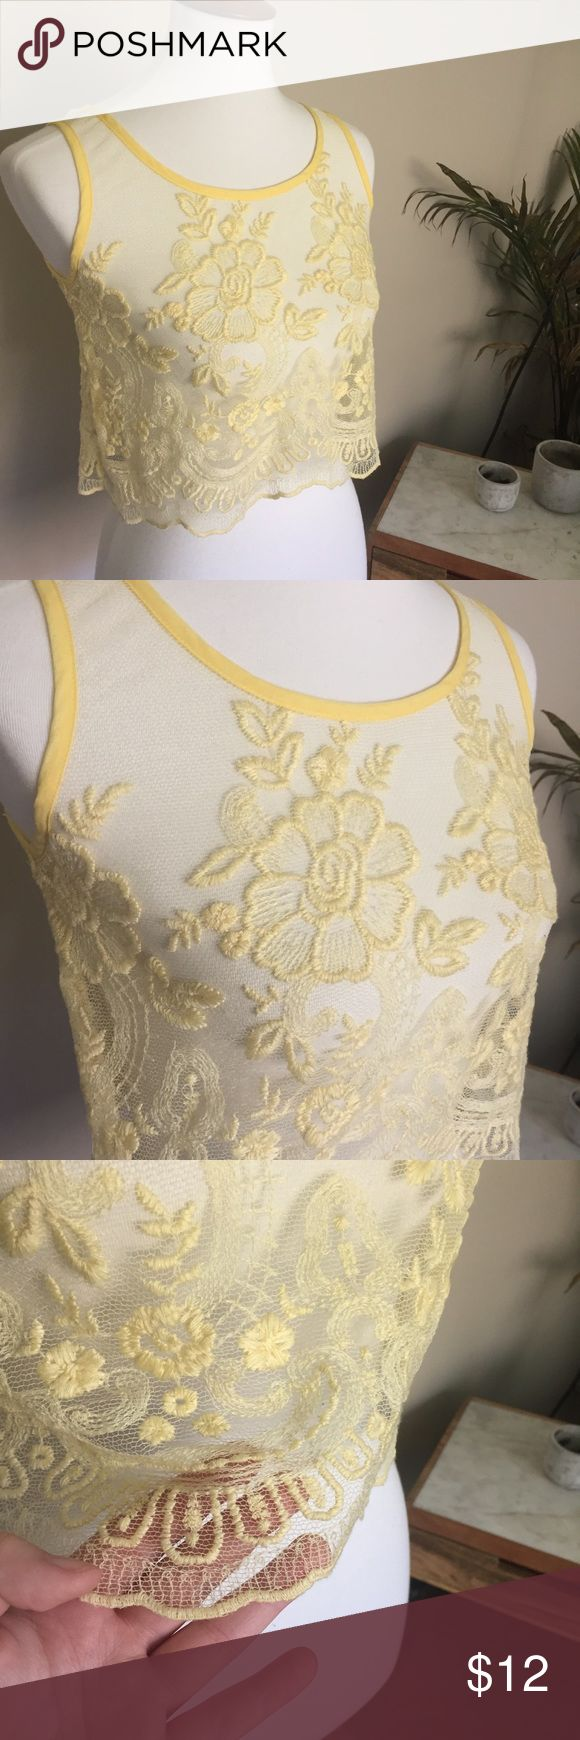 "Pastel Yellow Lace Crop Top Measurements:  Bust: 36"" Waist: 37"" Length: 17""  Details: No tags. This would be cute to layer or as a lingerie/sleep/swimwear top.  Fabric: No tags.  Follow our store on Facebook, Twitter, Etsy and Instagram: @wingdingpop #AB Unknown Tops Crop Tops"